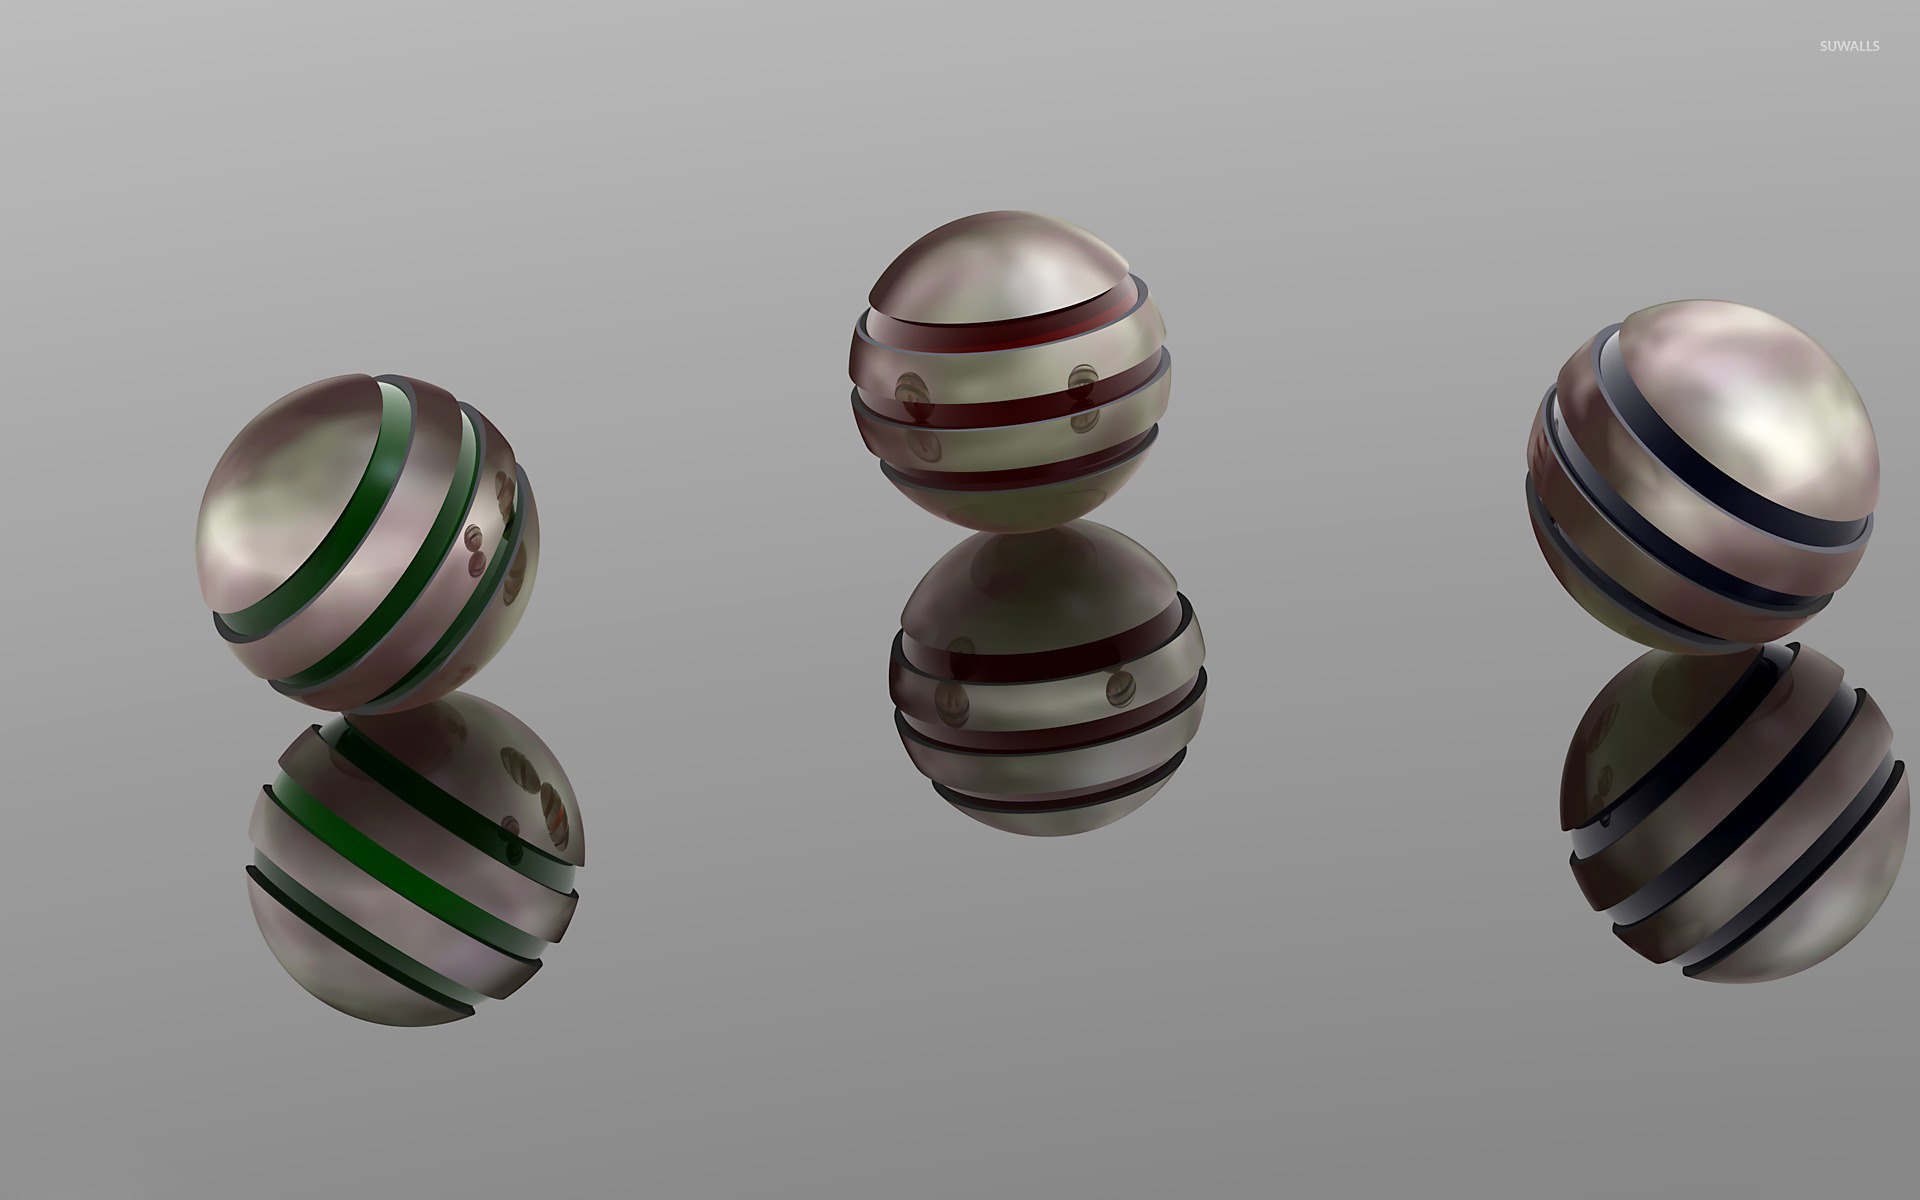 3d Cube Desktop Wallpaper Metal Spheres Wallpaper 3d Wallpapers 17283